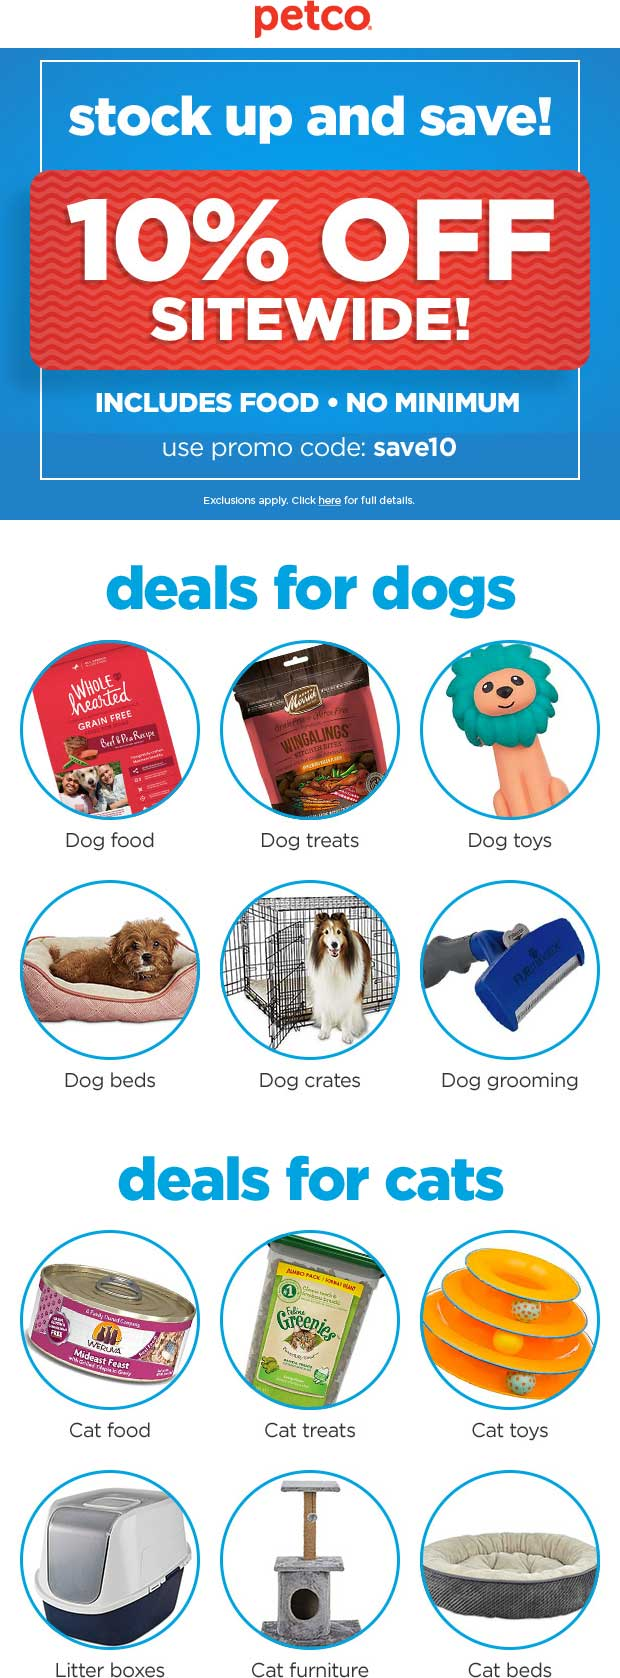 Petco Coupon February 2020 10% off everything online at Petco via promo code save10